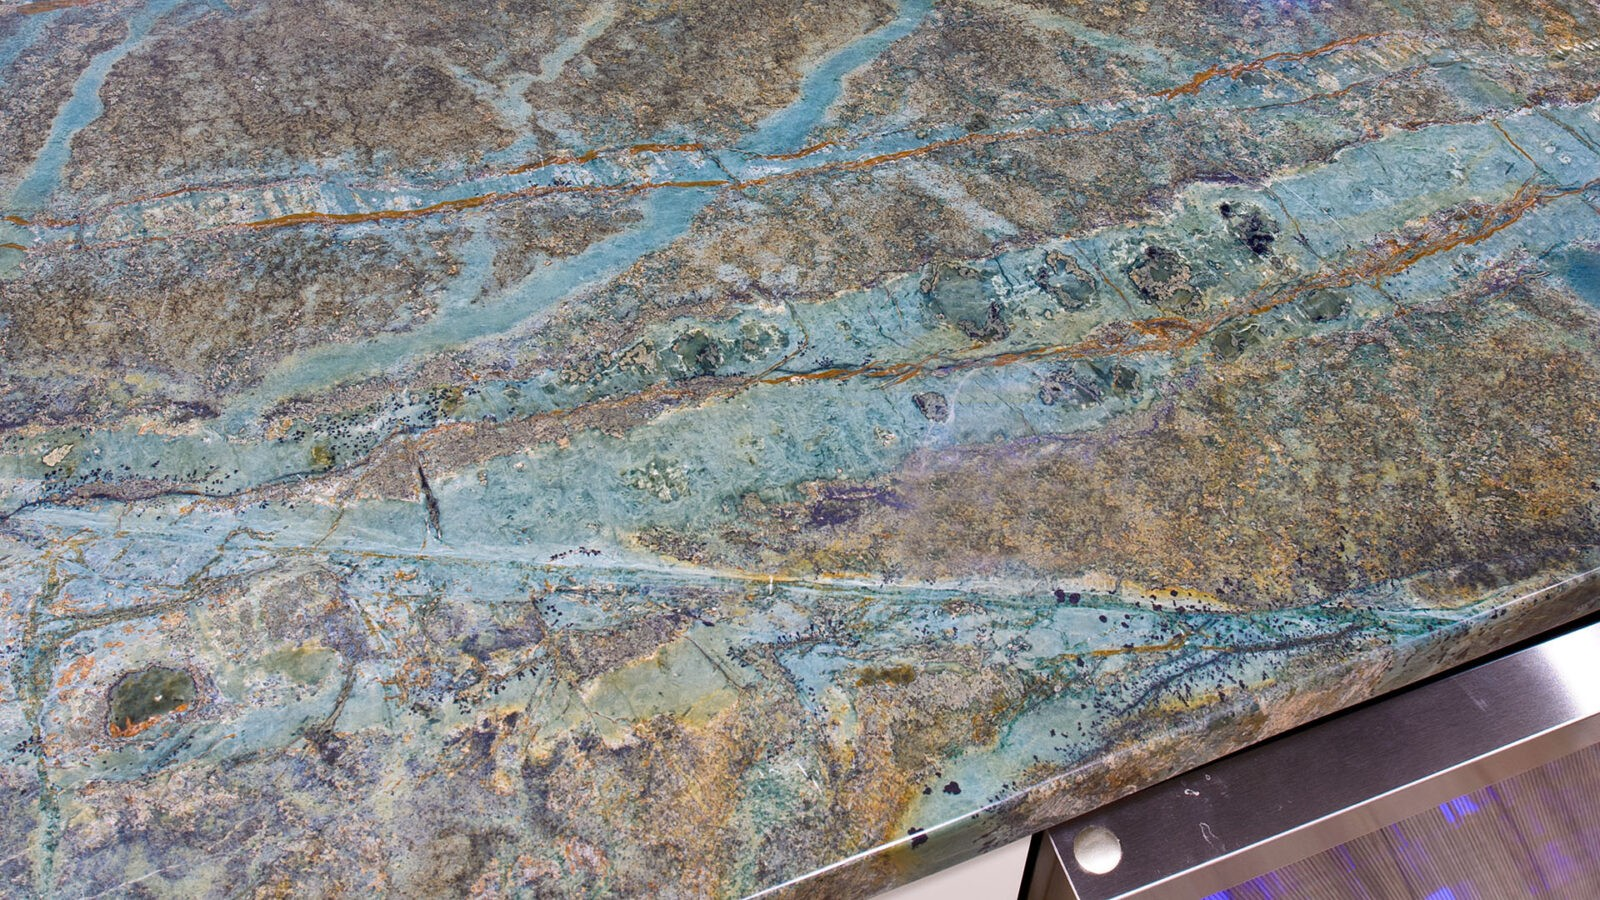 A marble finished kitchen surface